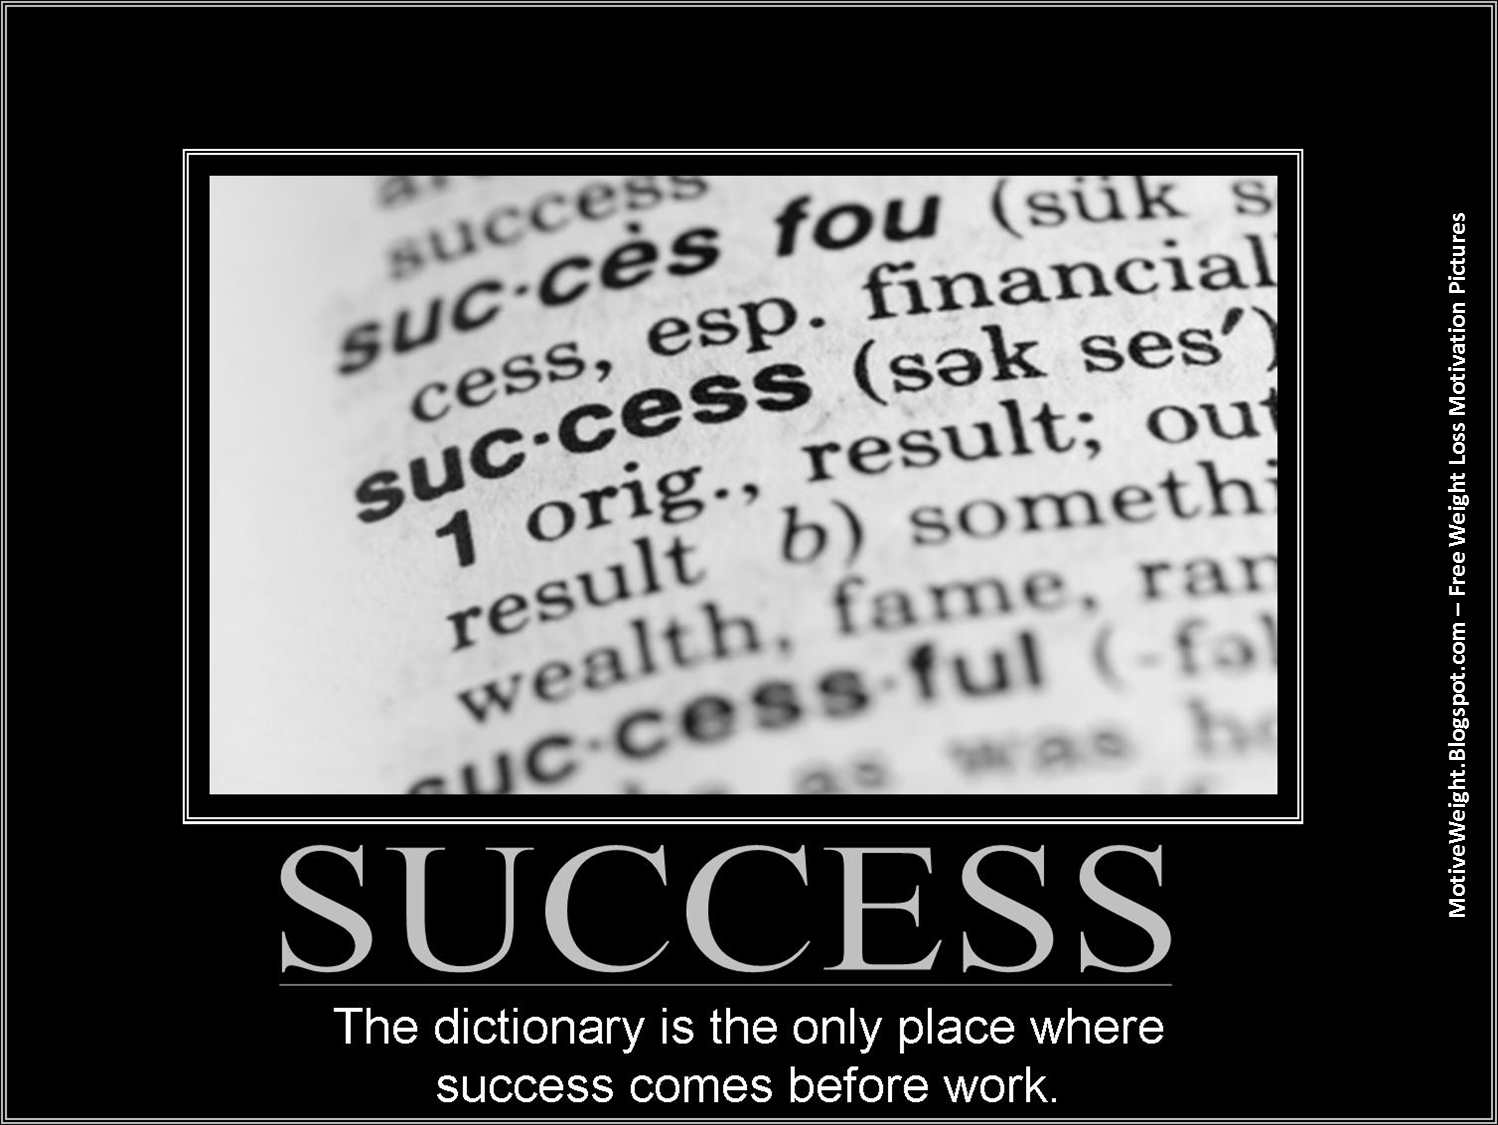 Success comes from hard work essay